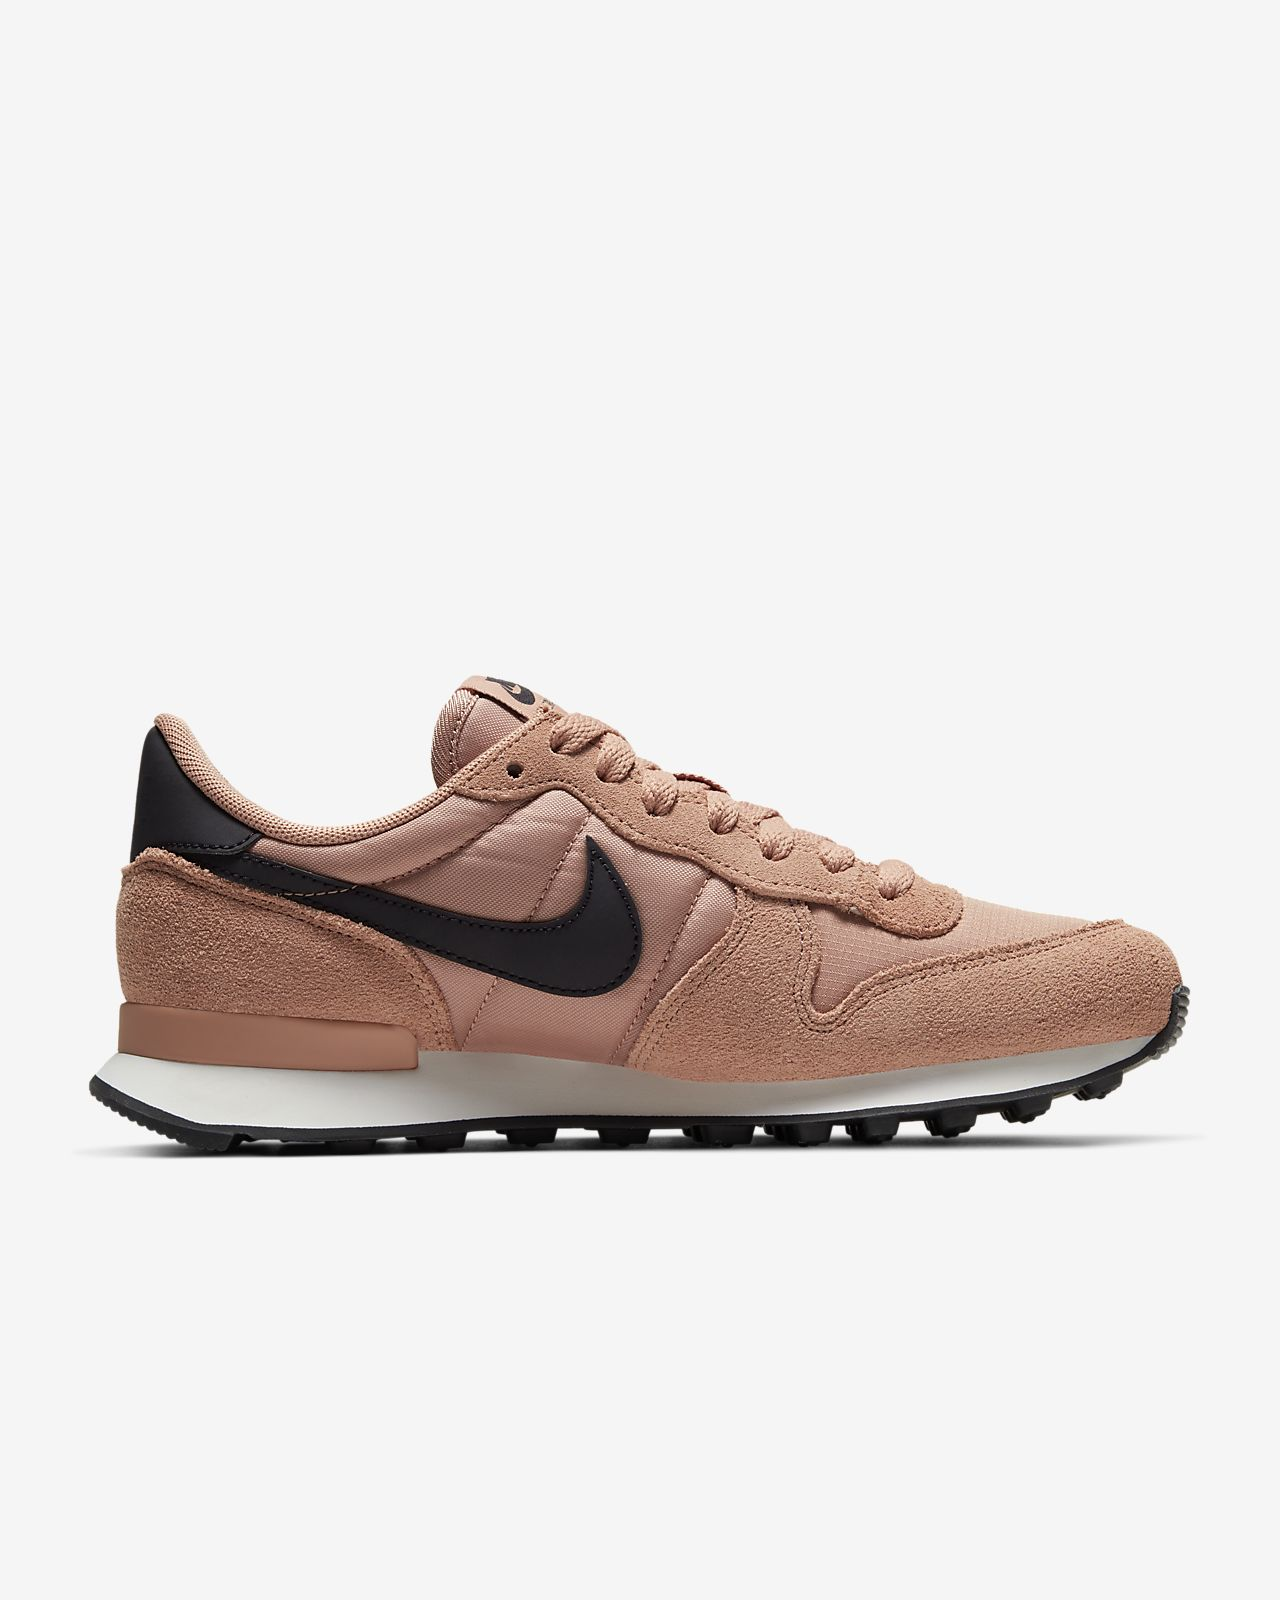 fb9f937a523 Low Resolution Chaussure Nike Internationalist pour Femme Chaussure Nike  Internationalist pour Femme